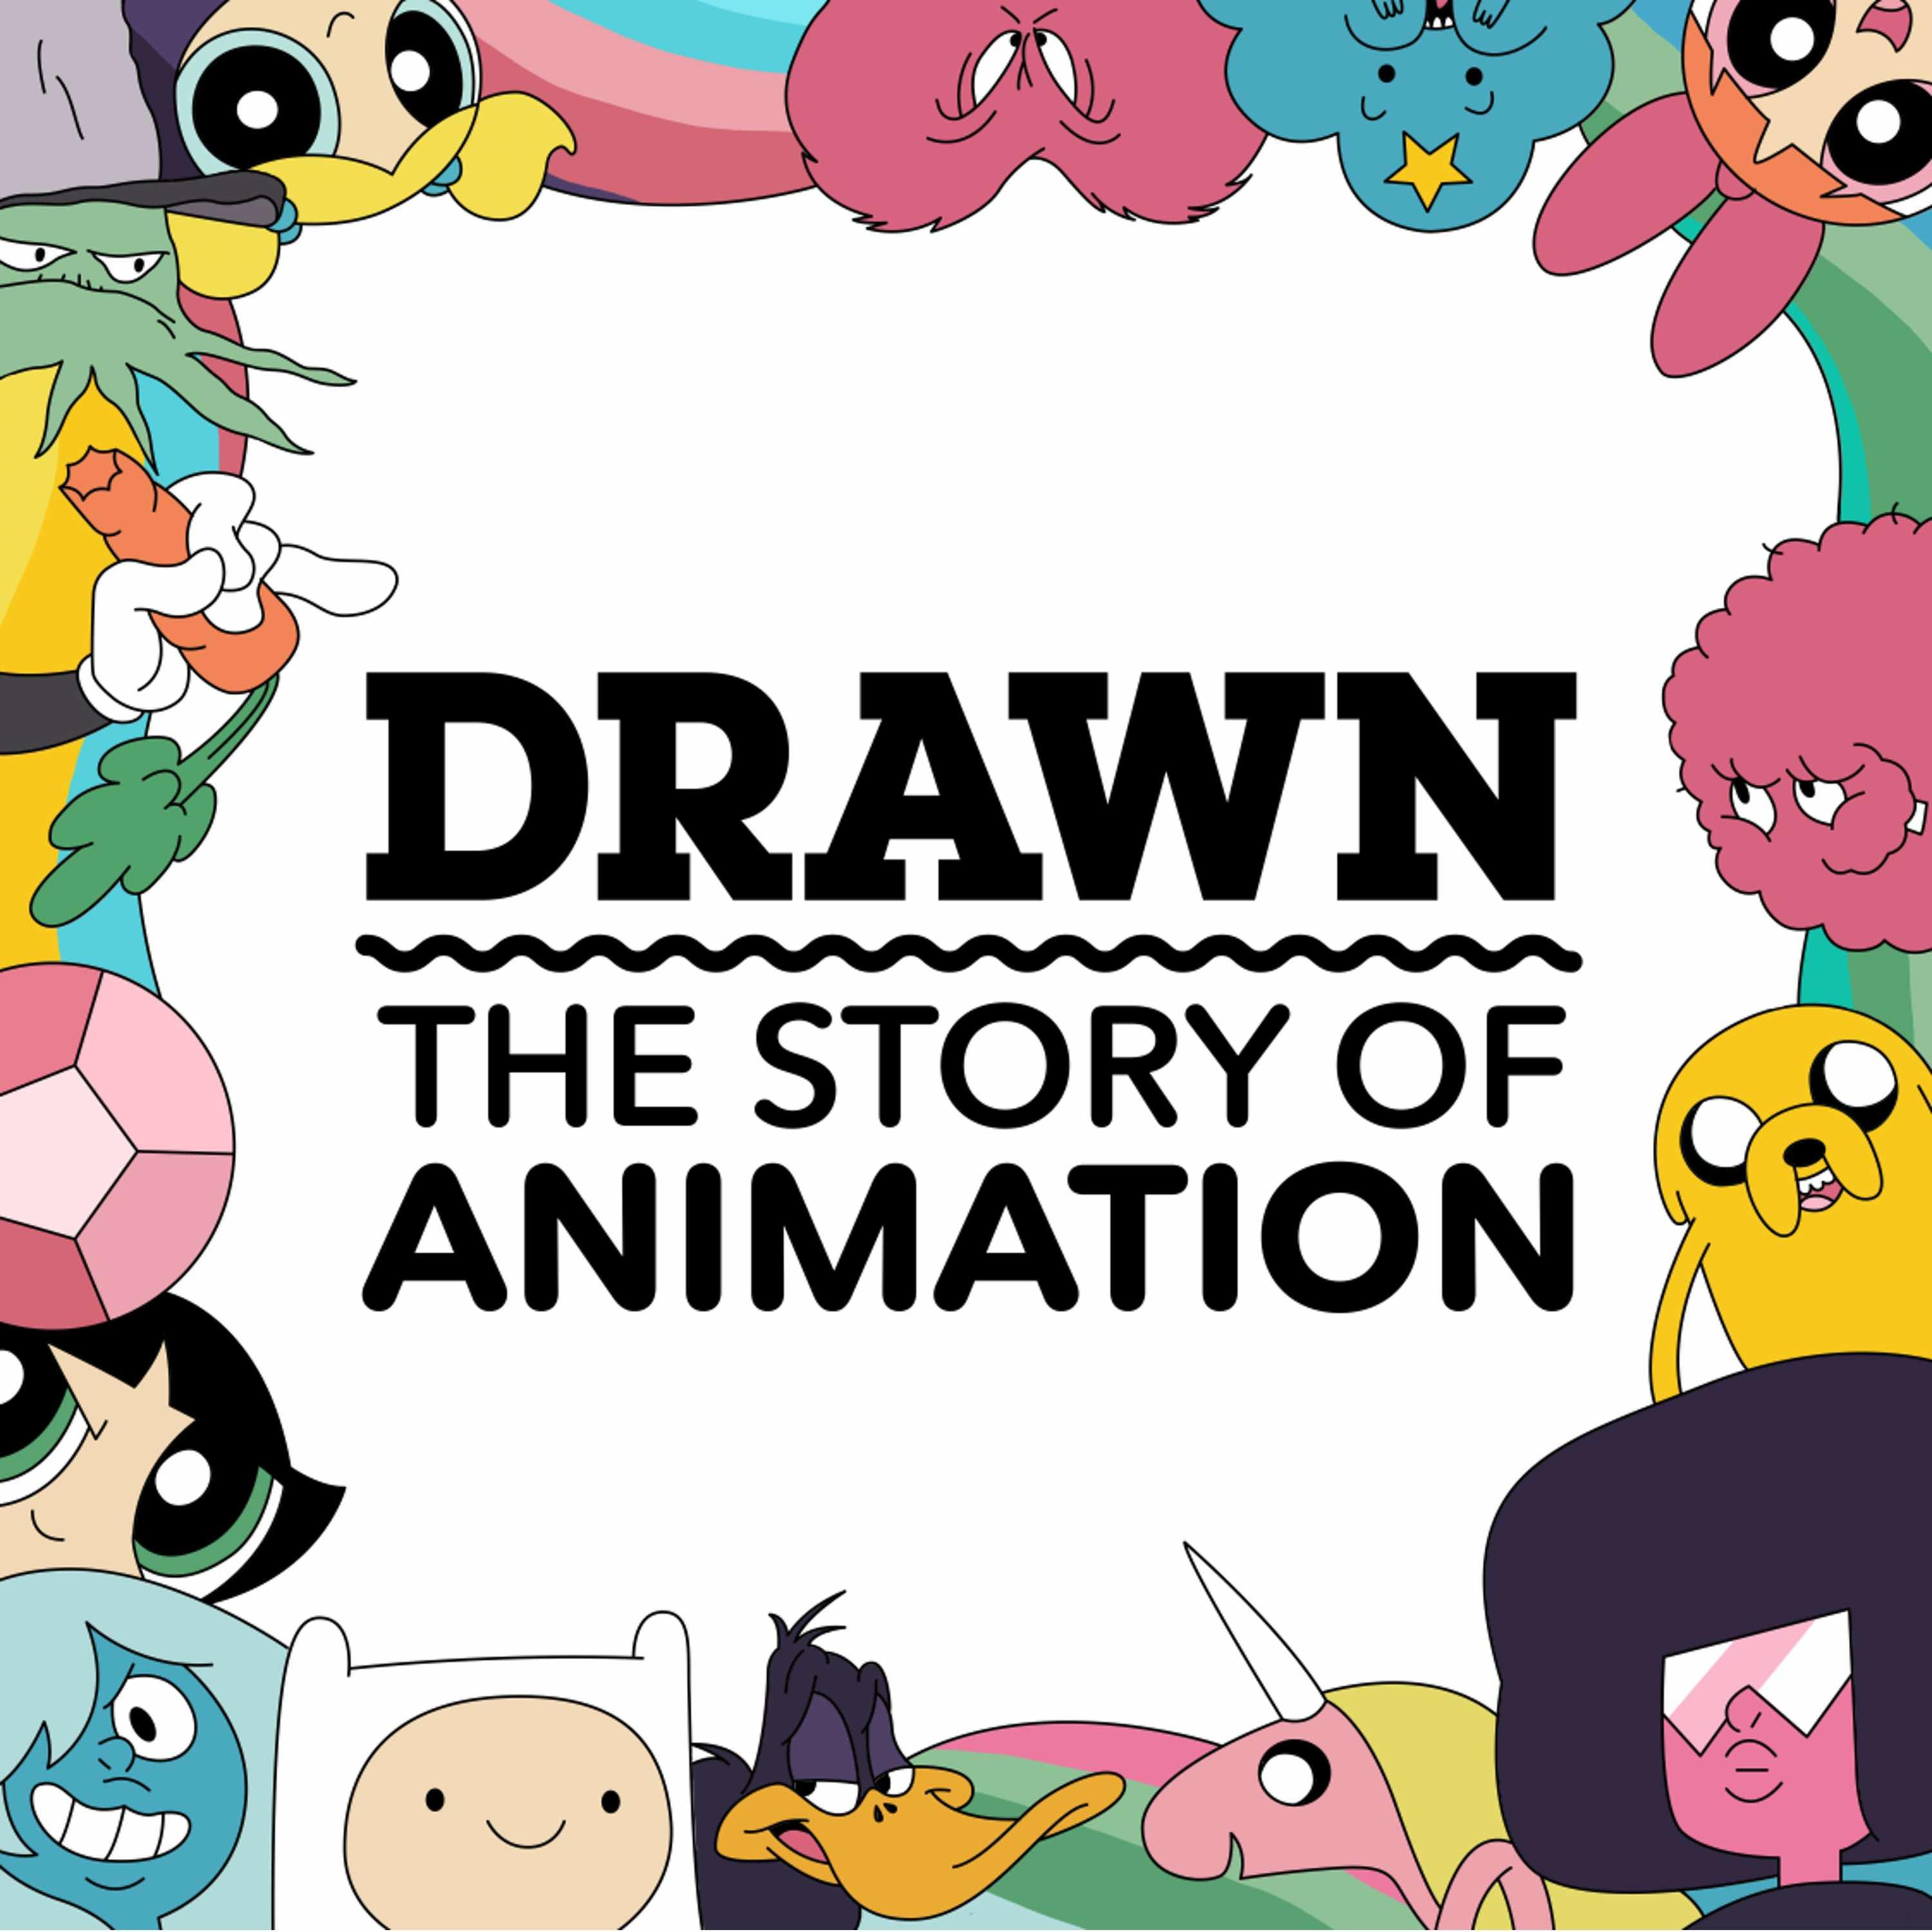 In honor of #visiblewomen, check out #DrawnPodcast's #WomenInAnimation episode! @surliestgirl interviews some talented ladies about their experiences in the industry, including our founder Ashley Kohler!